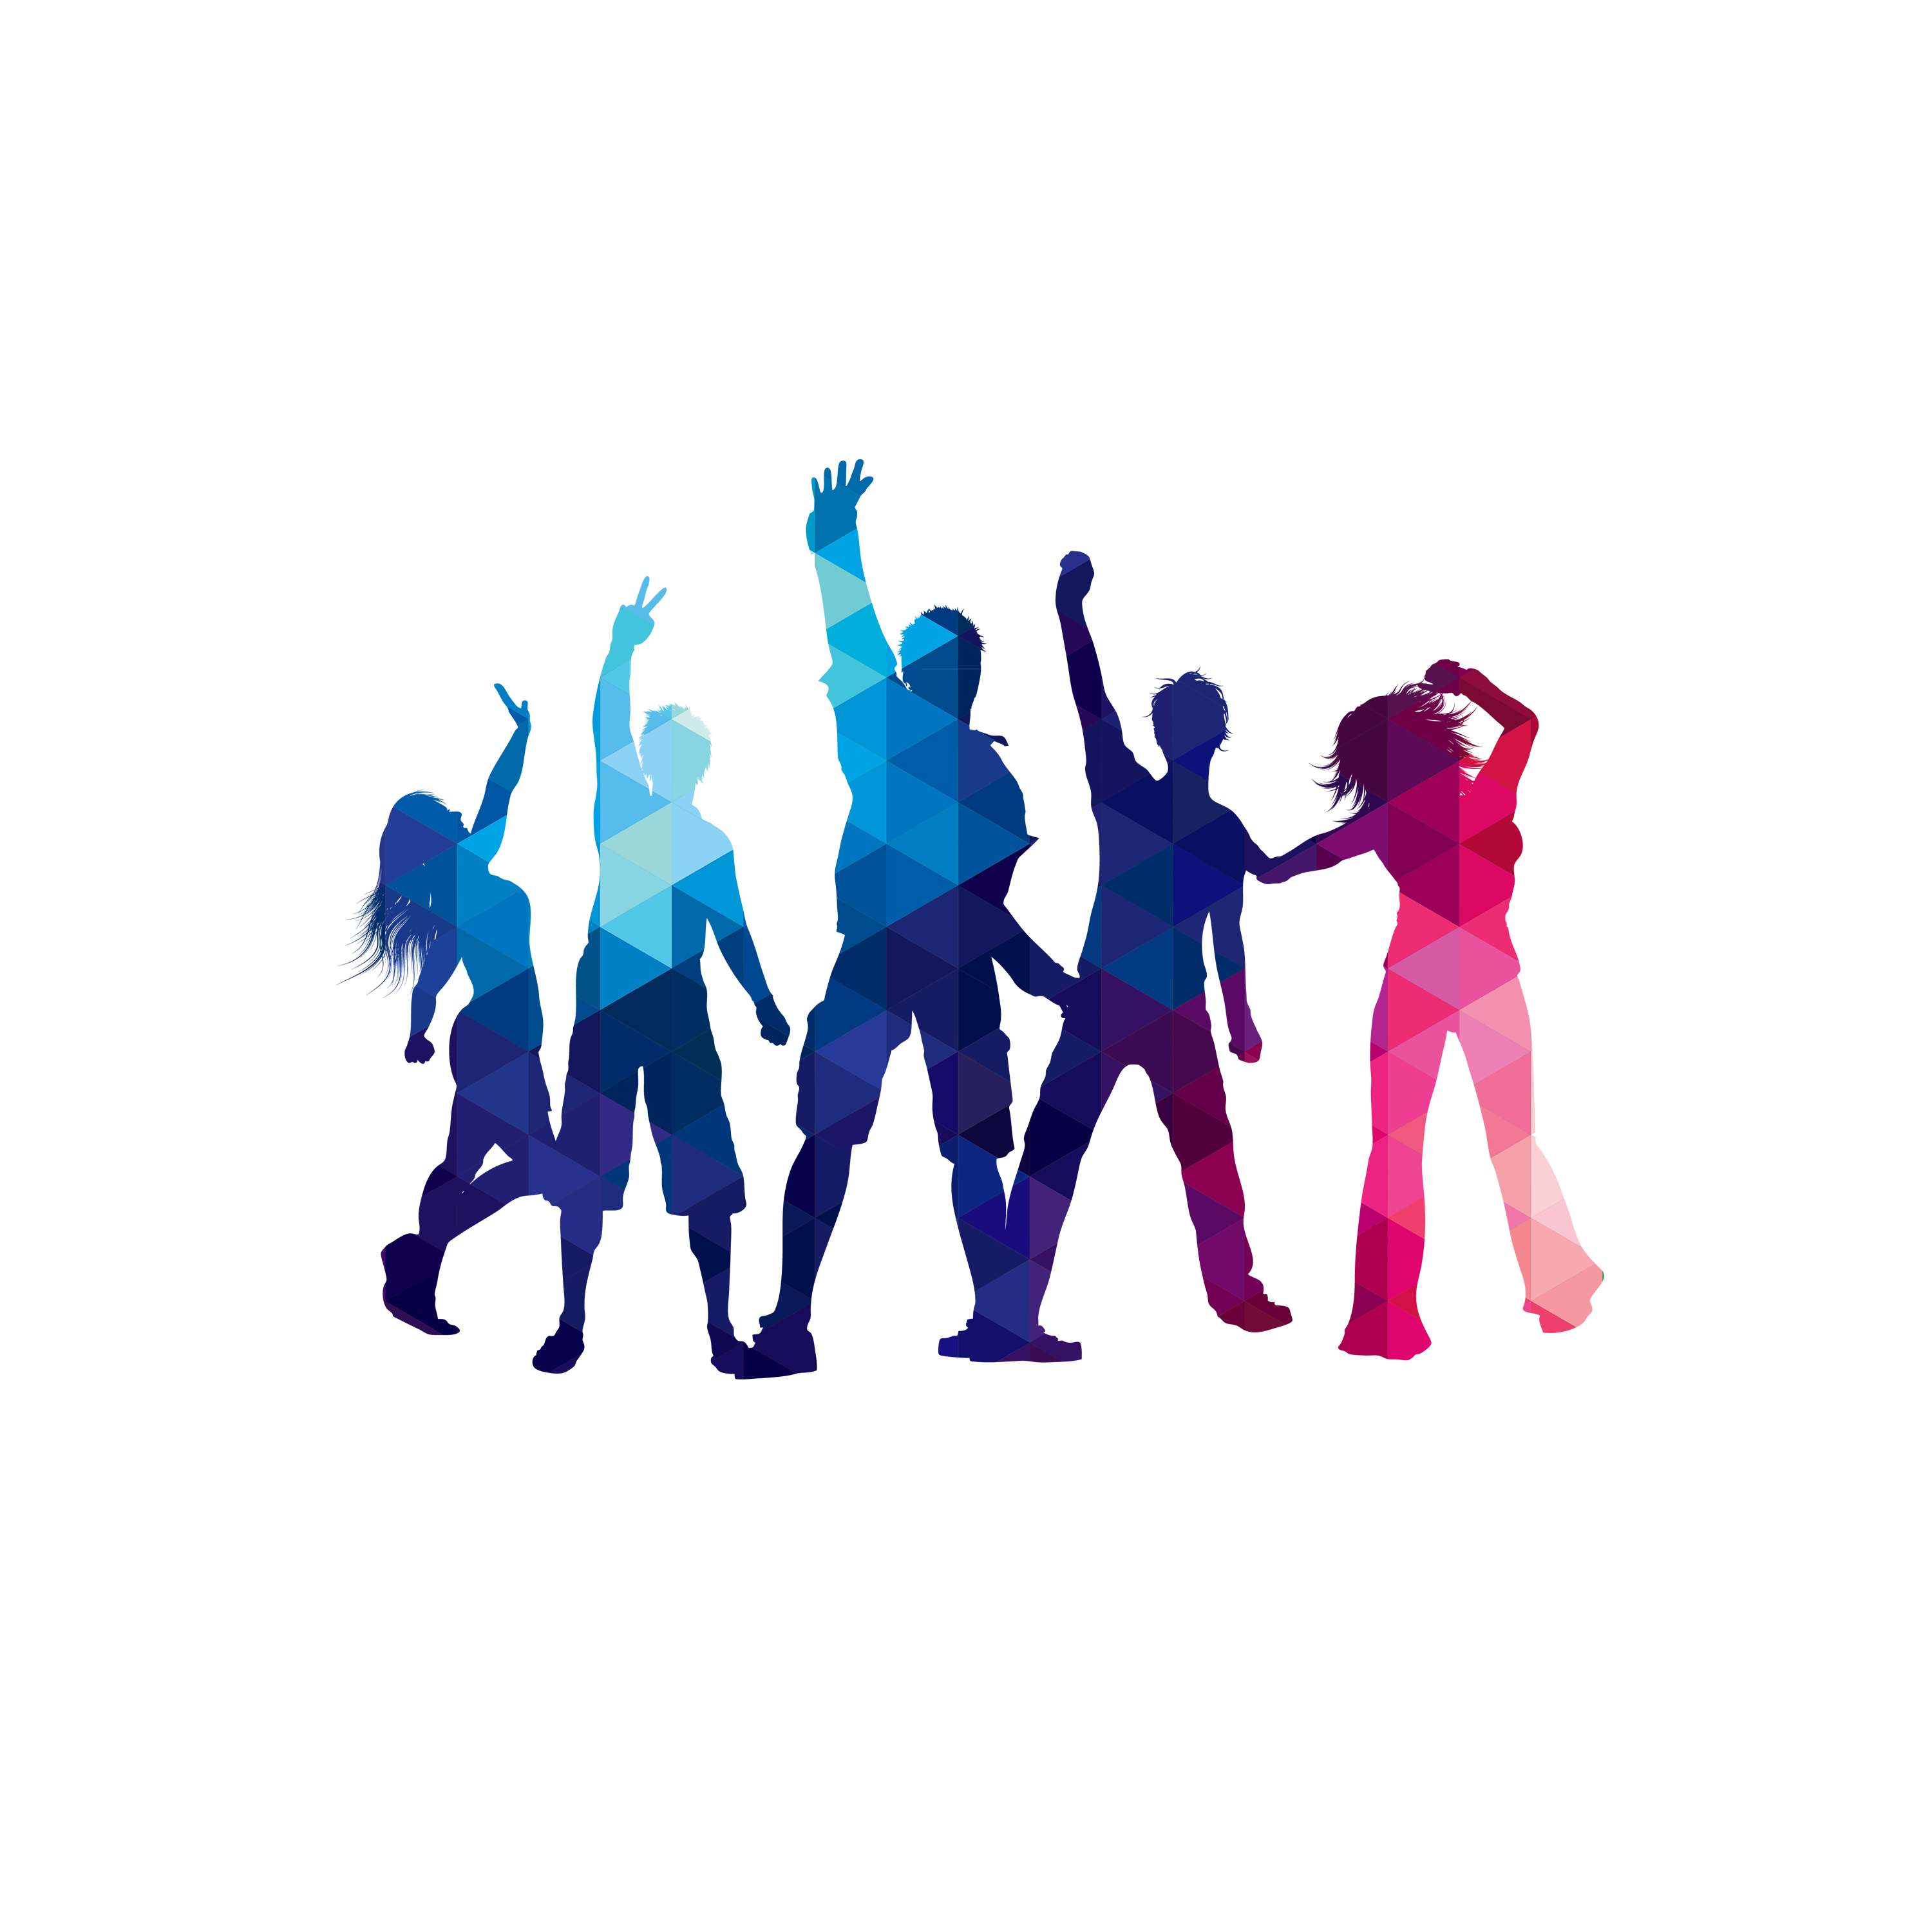 Group dance silhouette png. Poster transprent free download